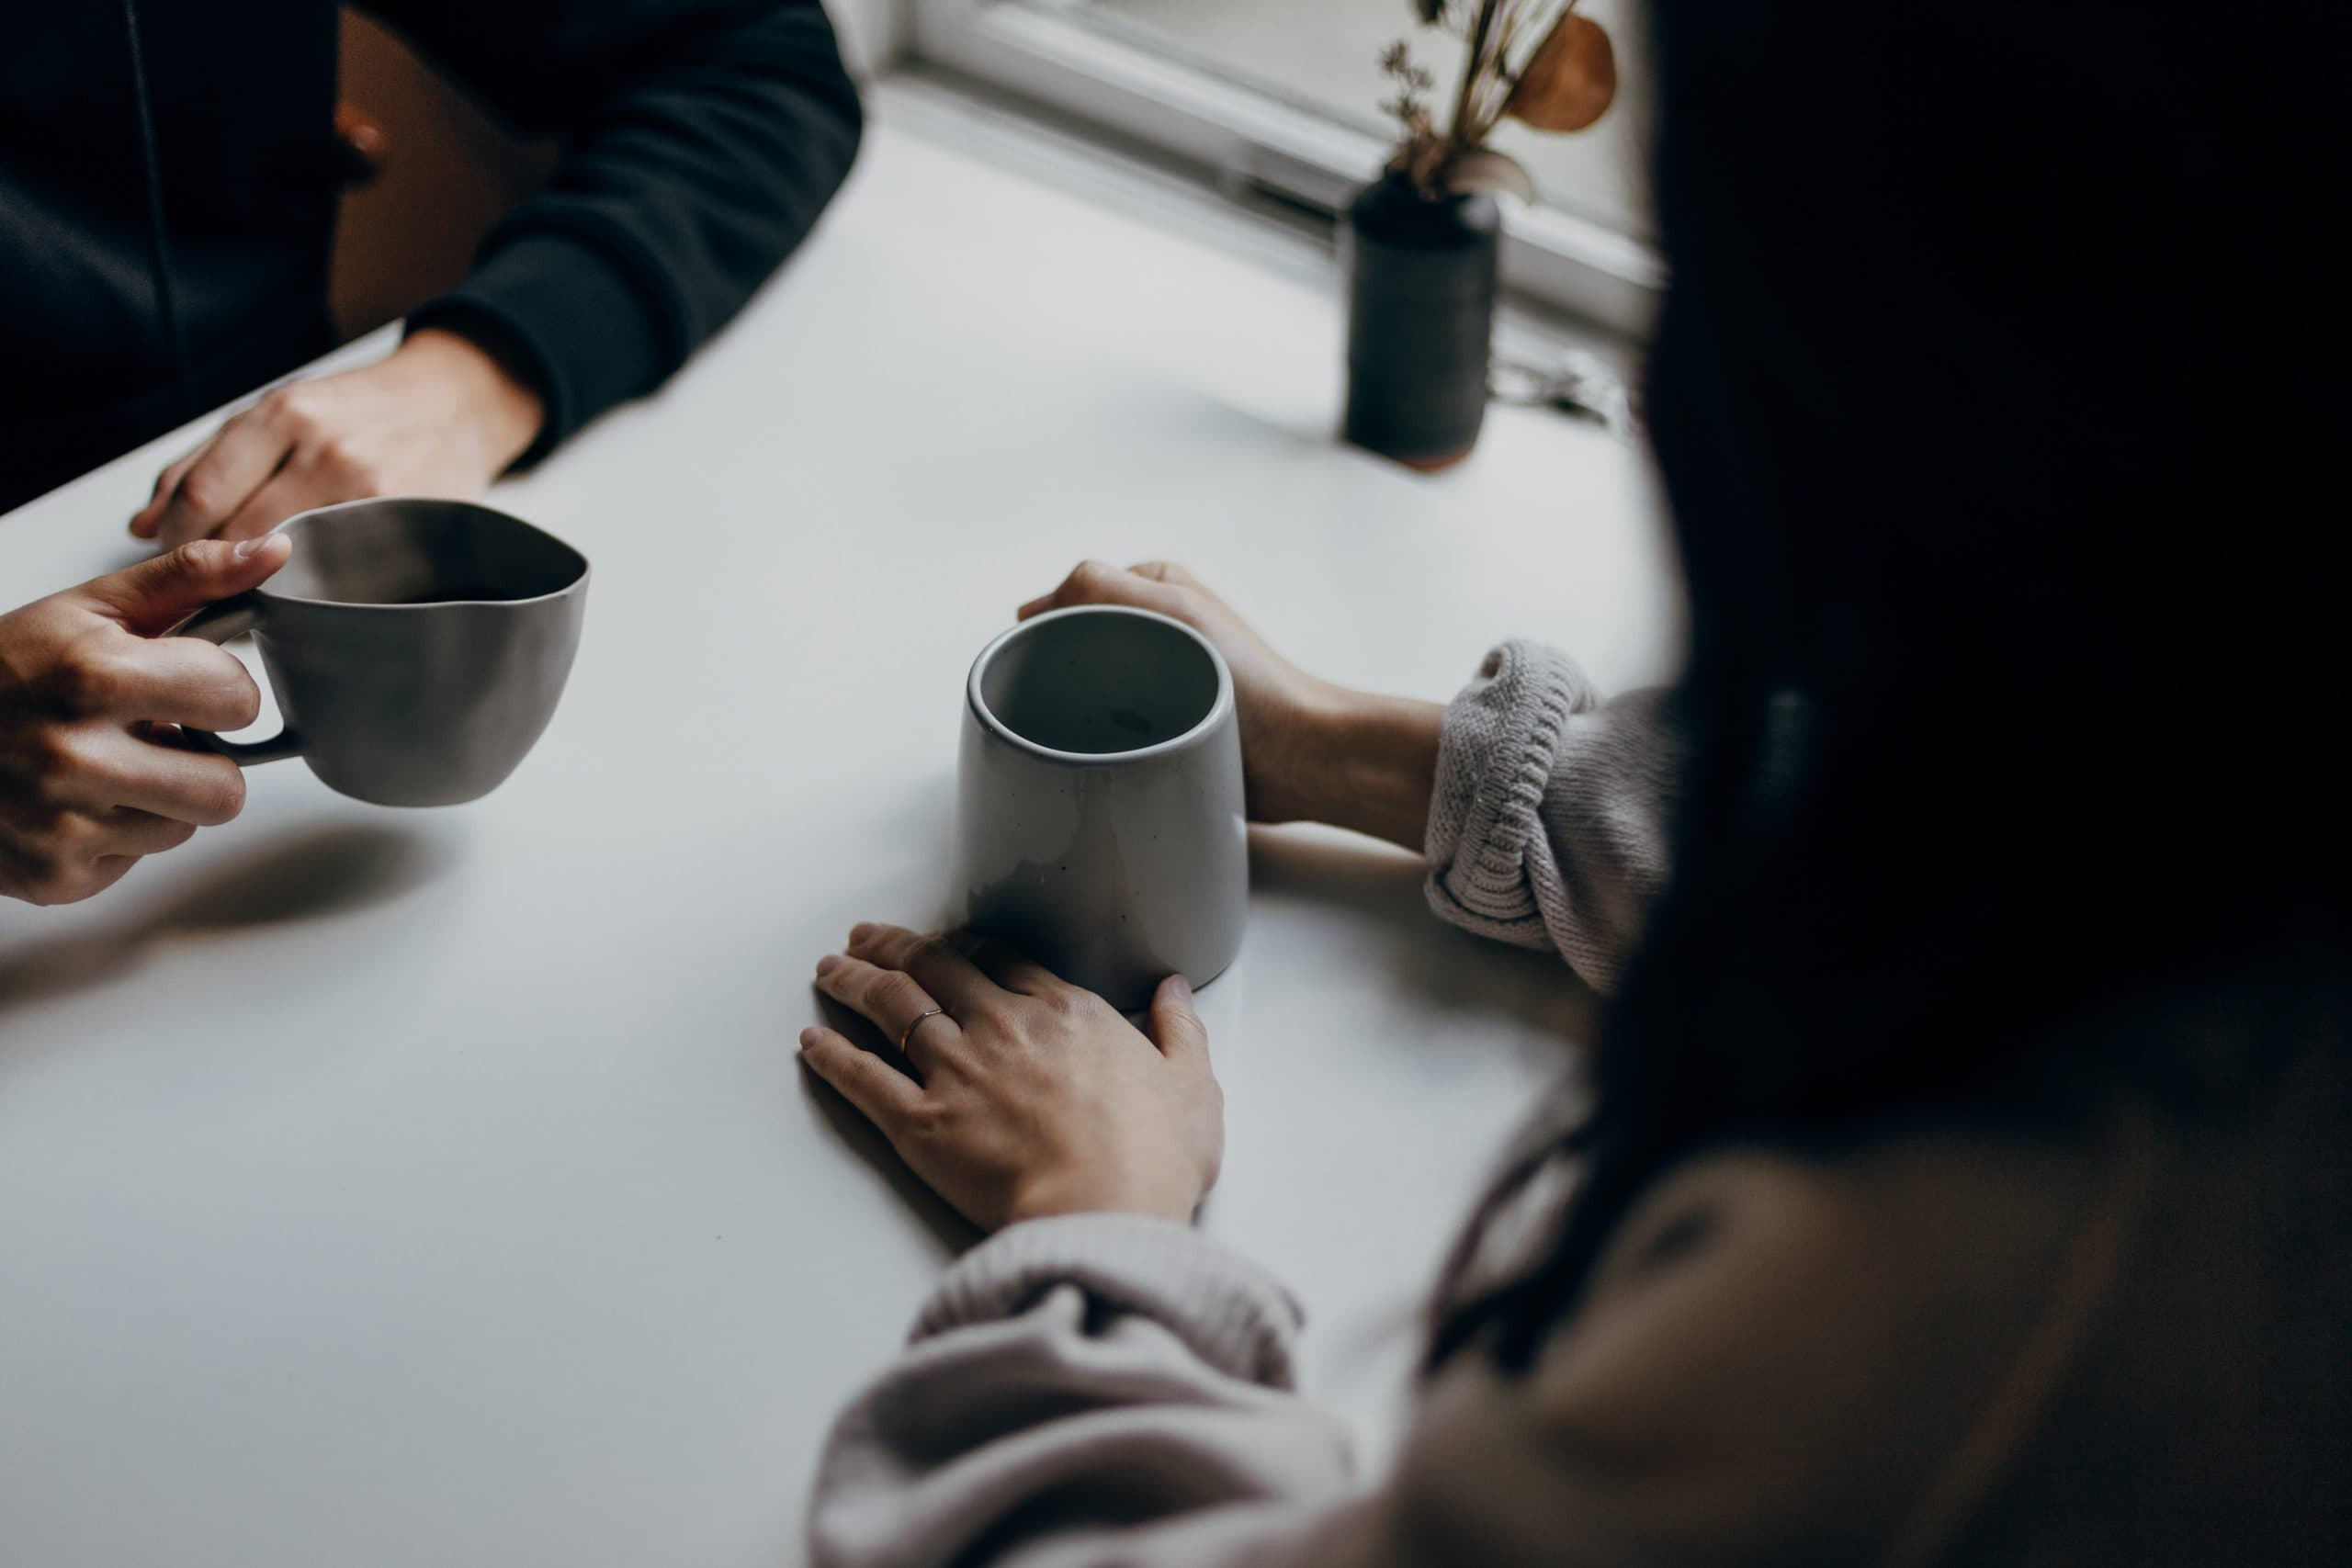 Image of two women's hands. They are both holding coffee mugs and are sat at a table facing each other.